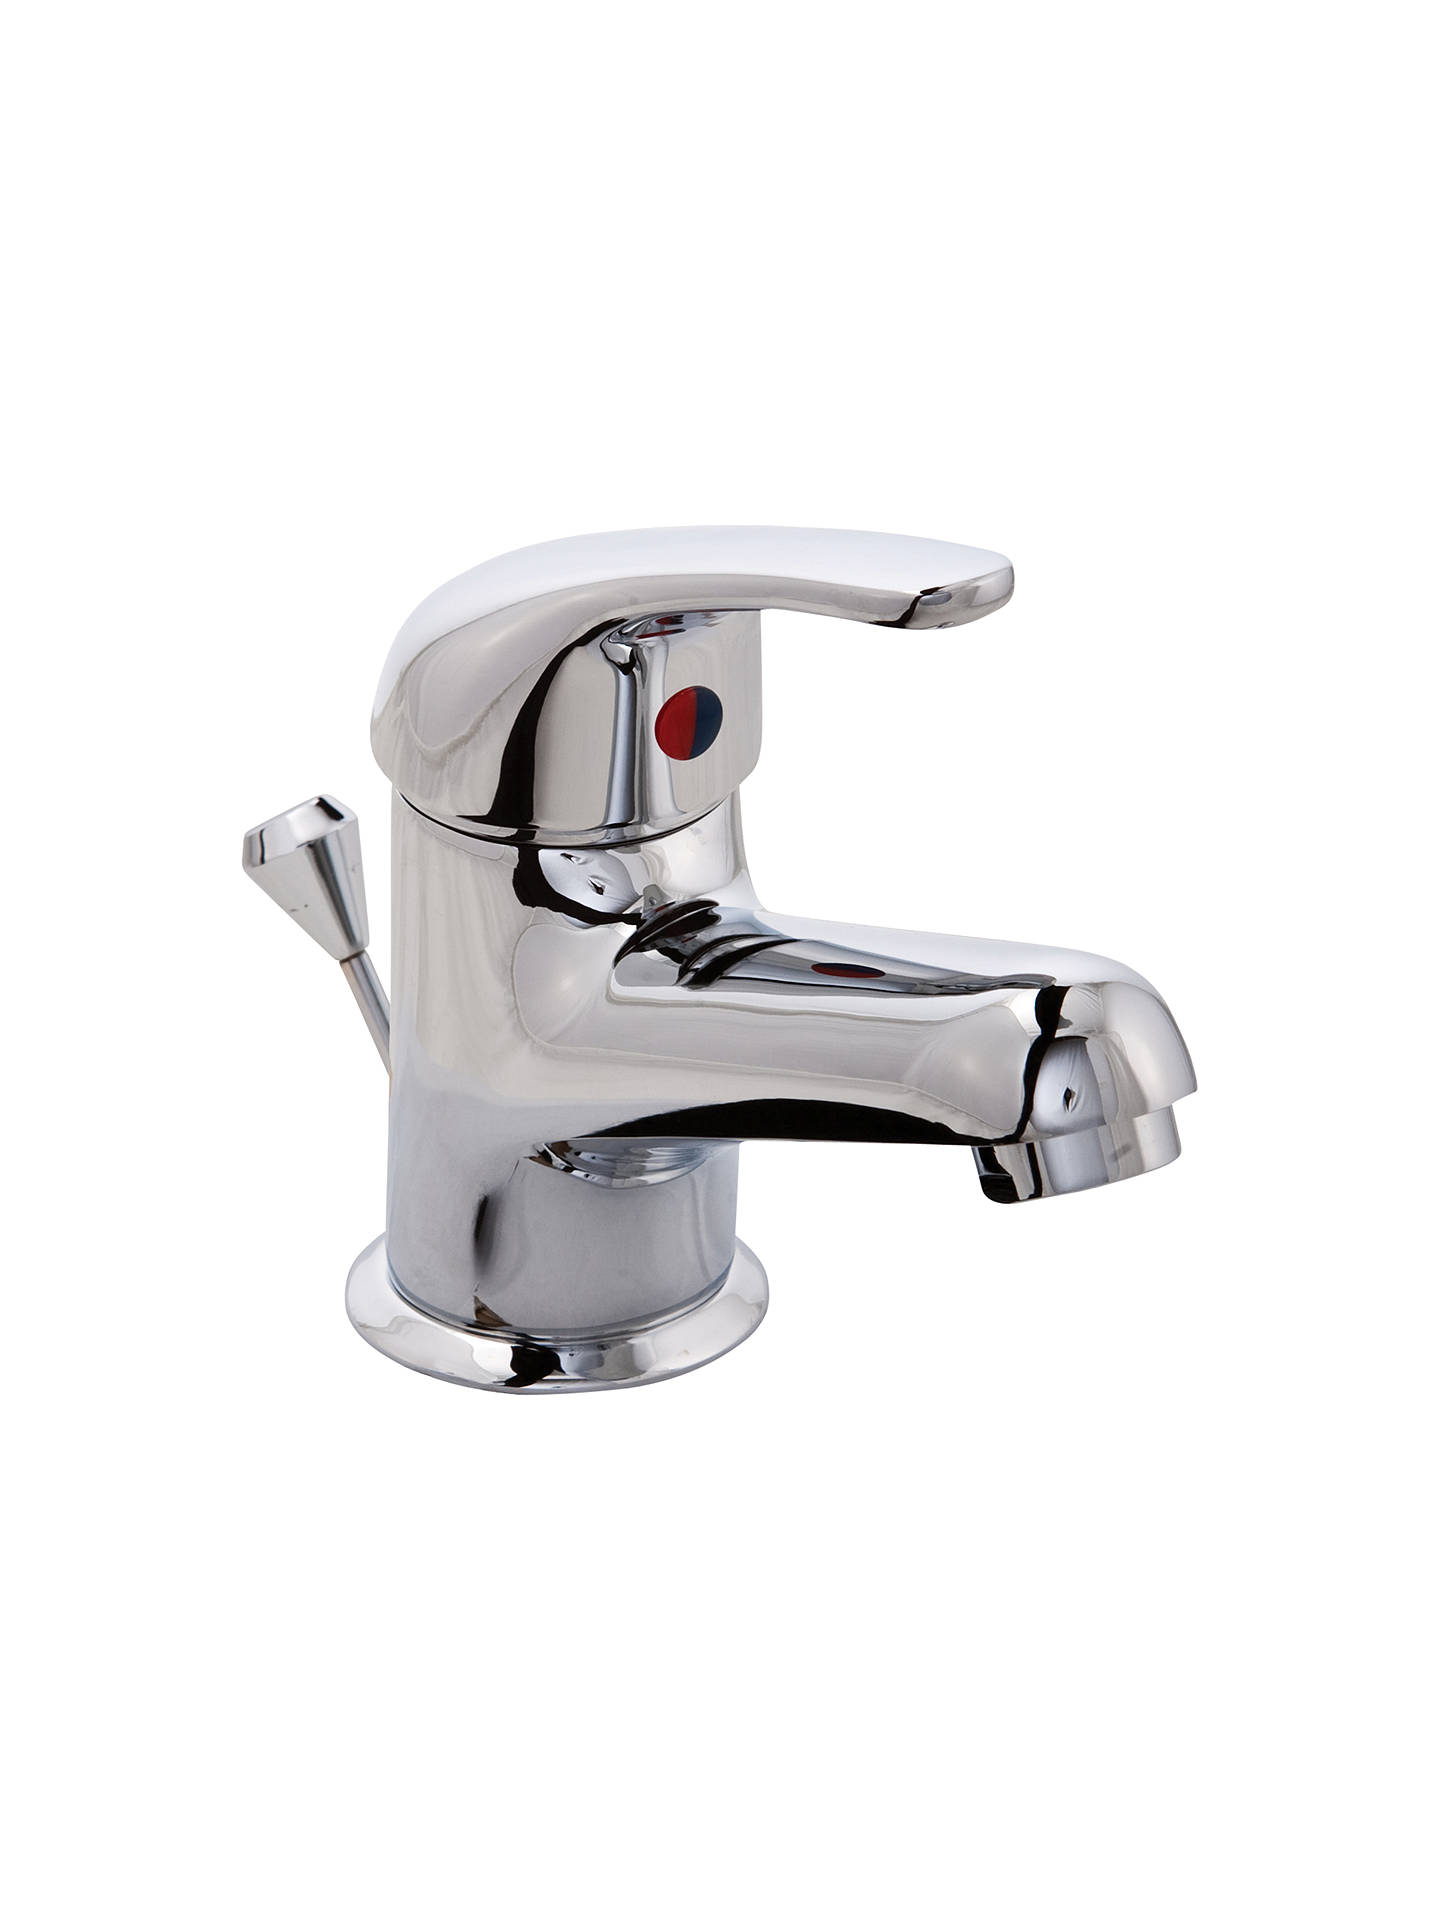 BuyJohn Lewis & Partners Ellen Monobloc Basin Mixer Bathroom Tap Online at johnlewis.com